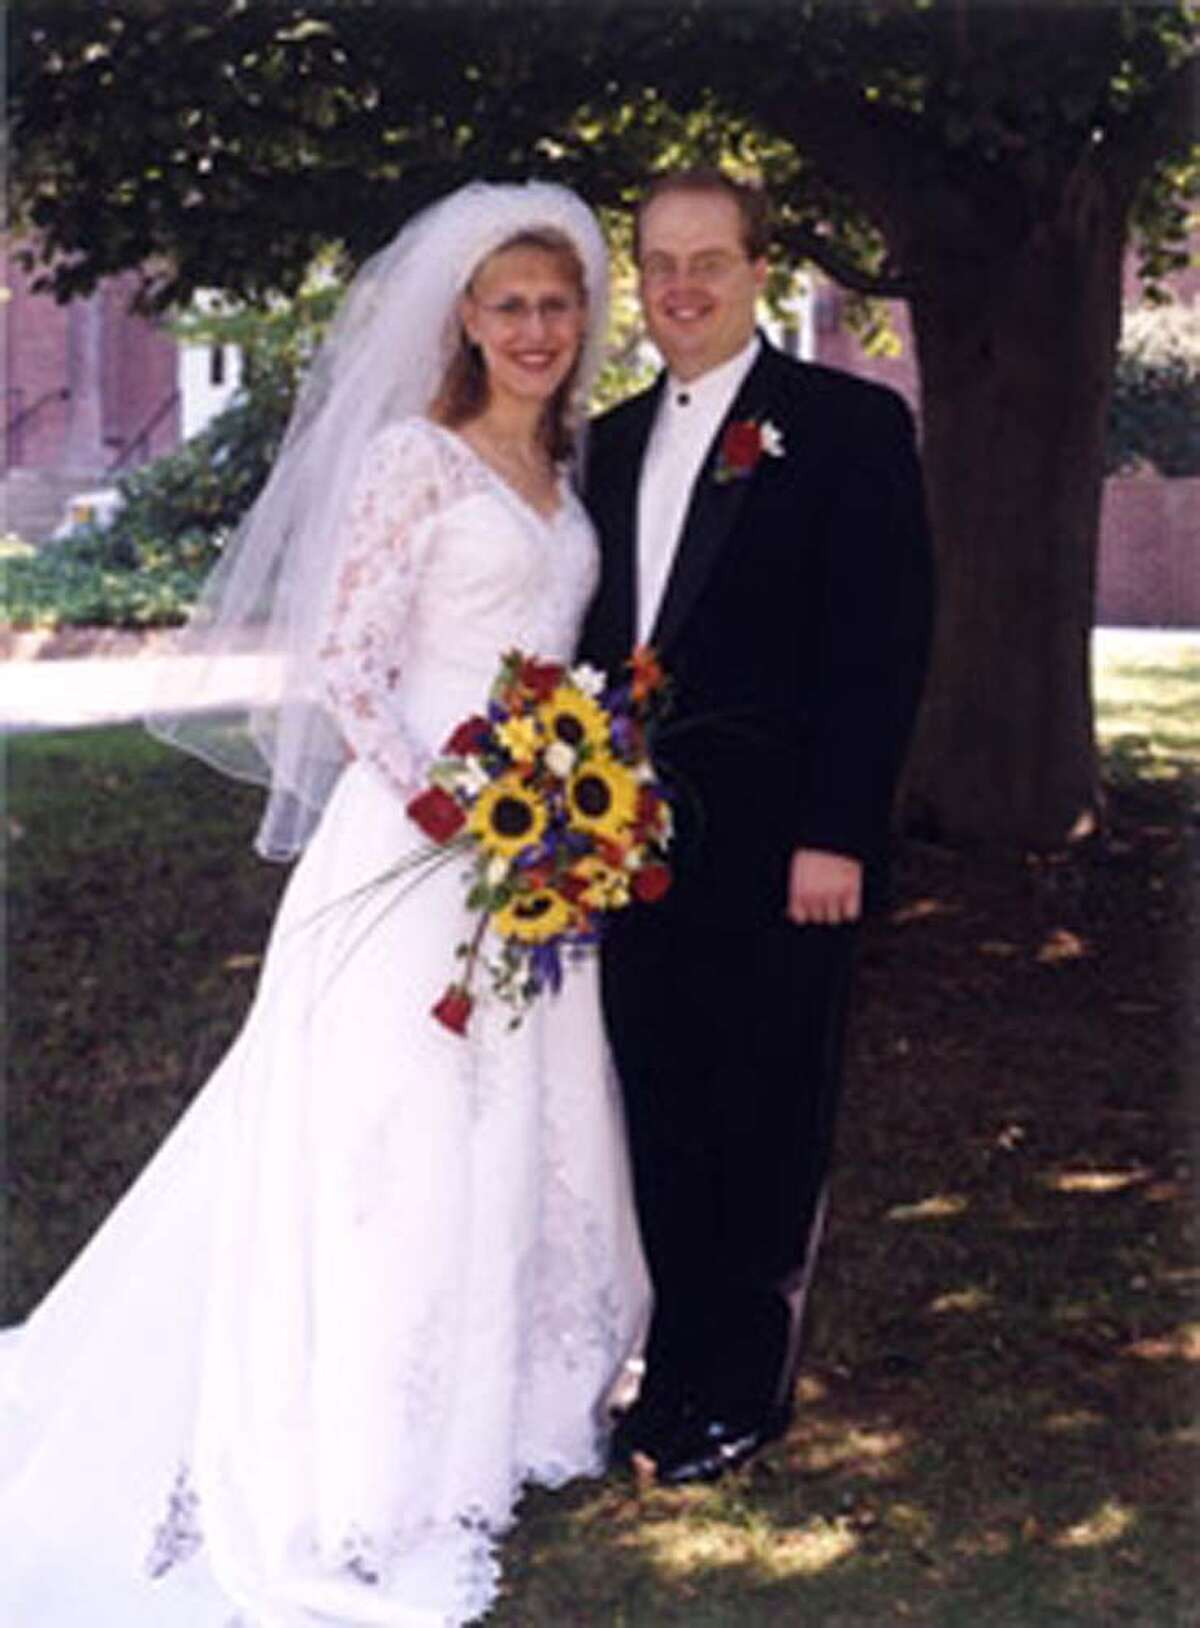 Amy and Jason Davis were married Sept. 25, 1999 in Branford. The couple met when Jason was a student at Western Connecticut State University in Danbury. Amy graduated from WestConn a year after he did.